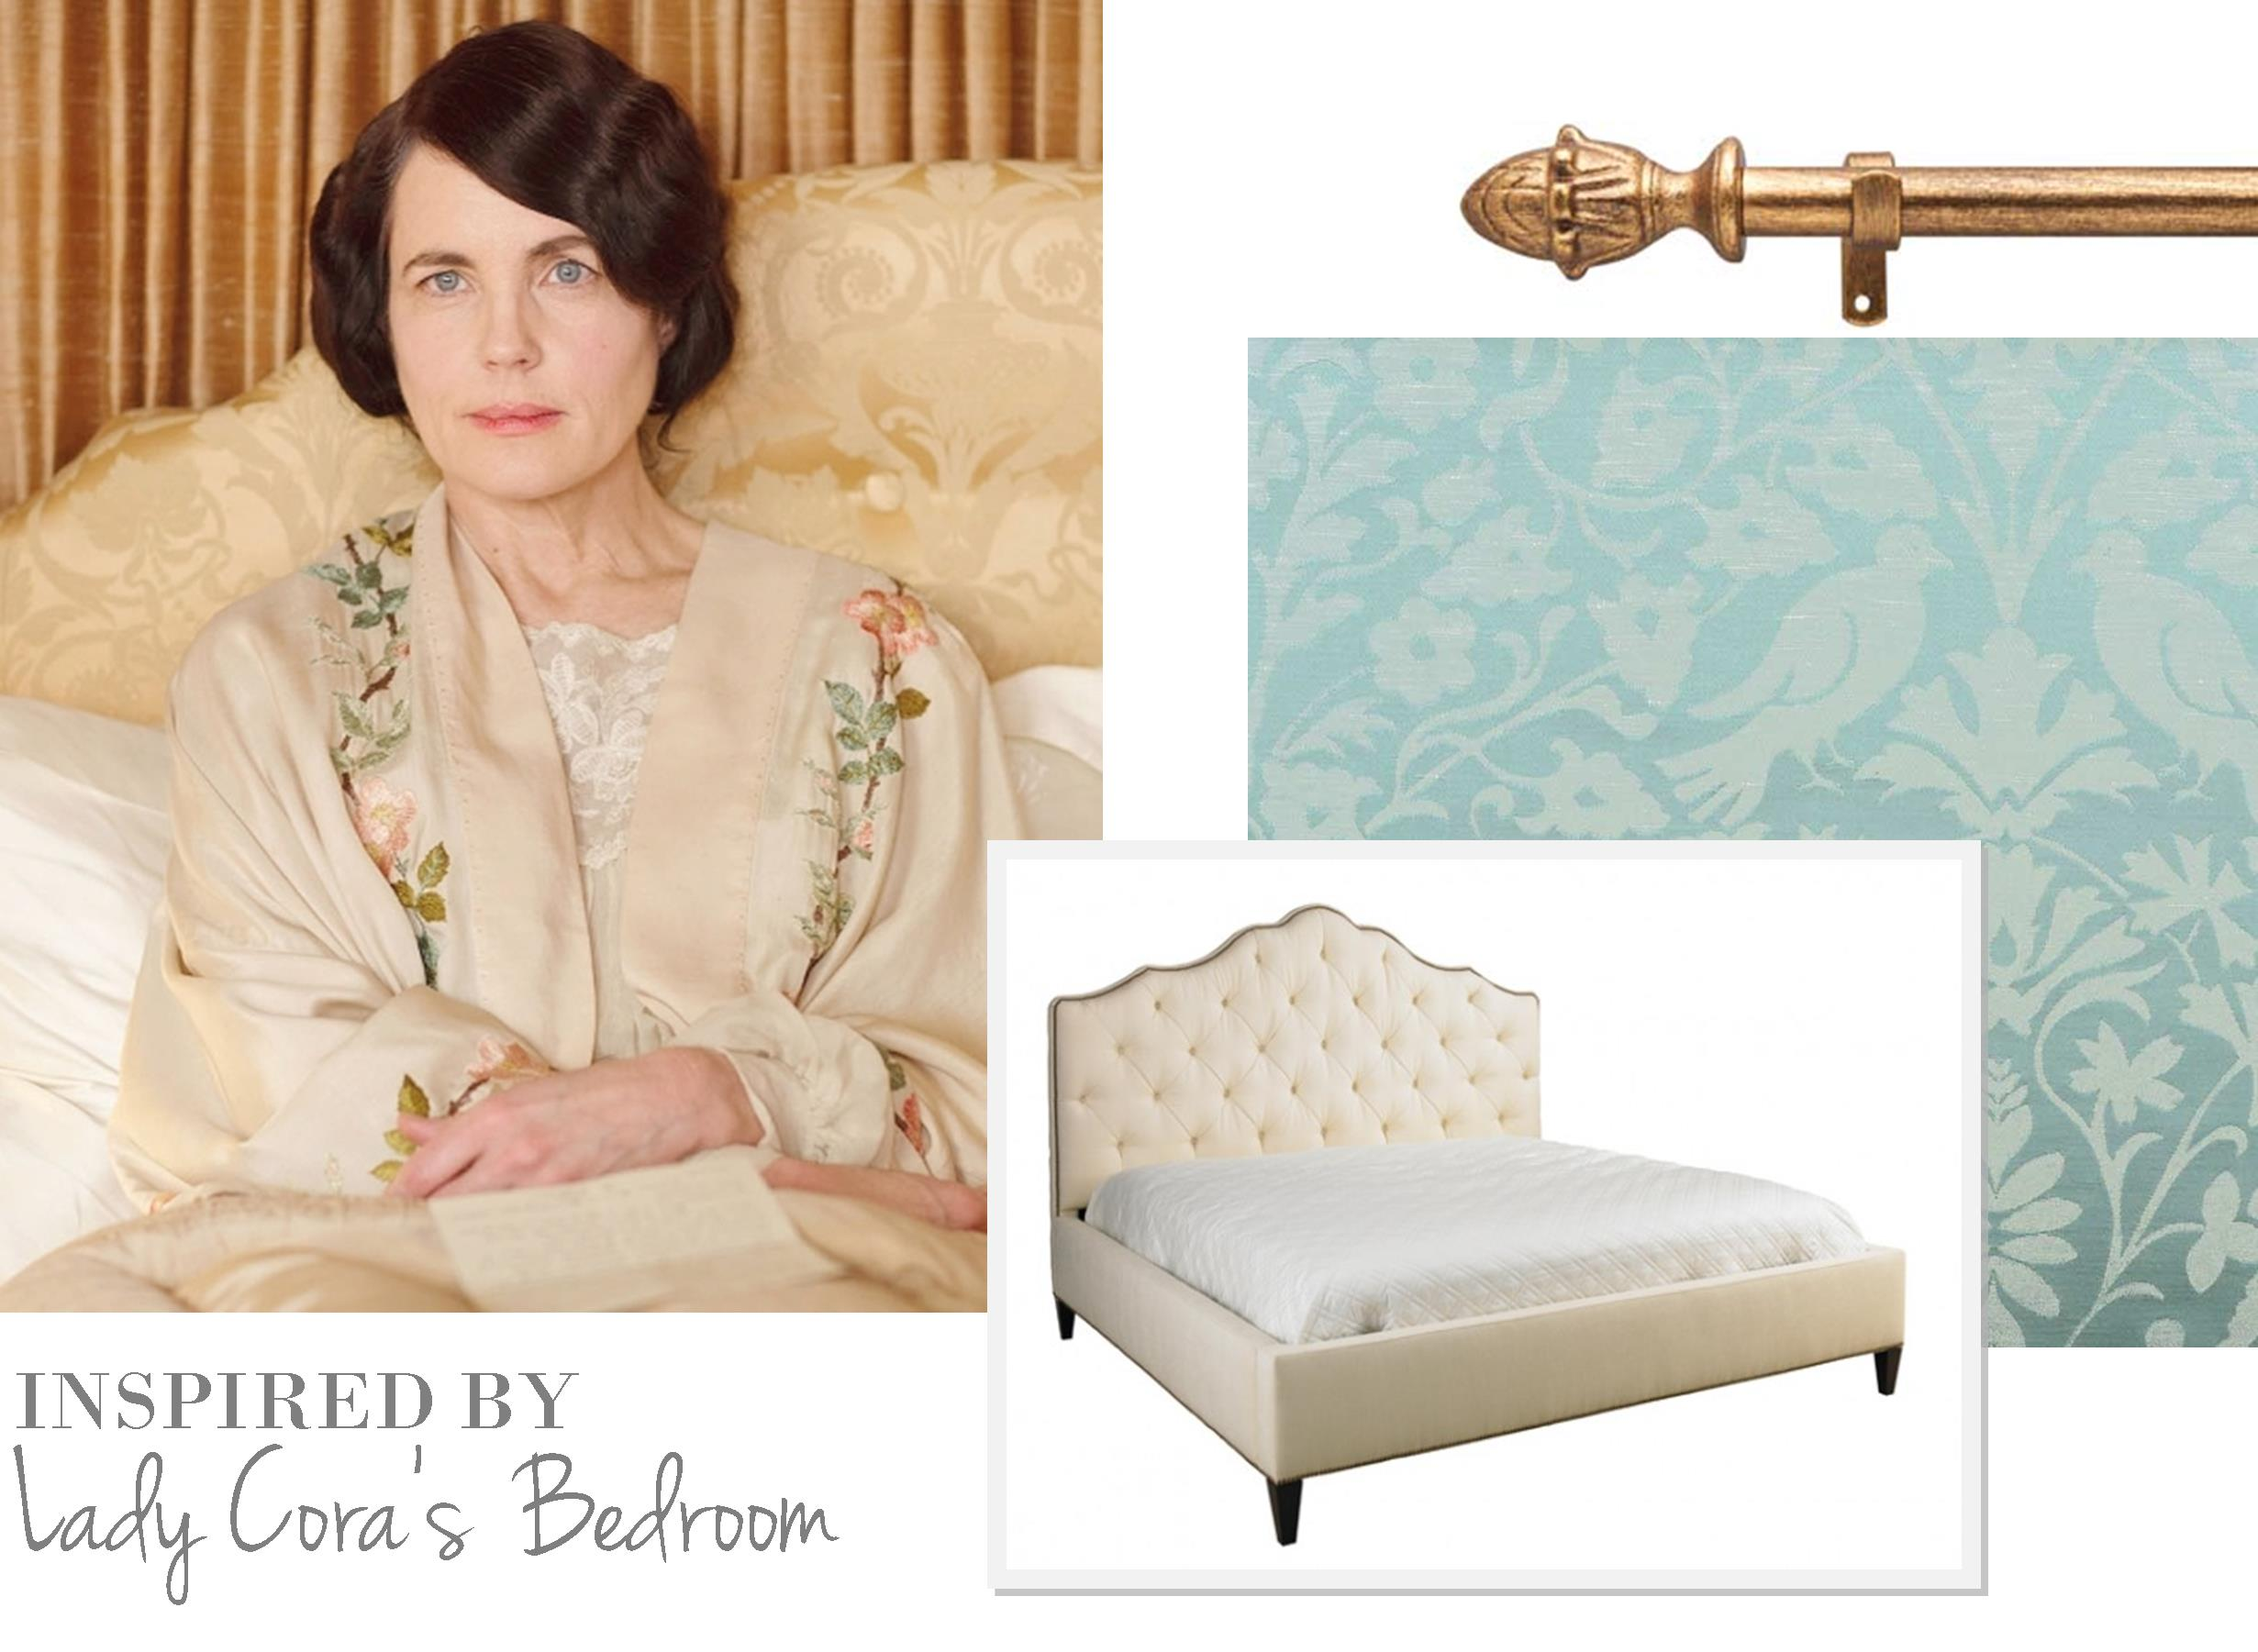 Best Cora Bedroom Furniture Ideas Home Design Ideas  : Downton Abbey Bedroom Inspiration from ramsshopnfl.com size 2461 x 1801 jpeg 286kB